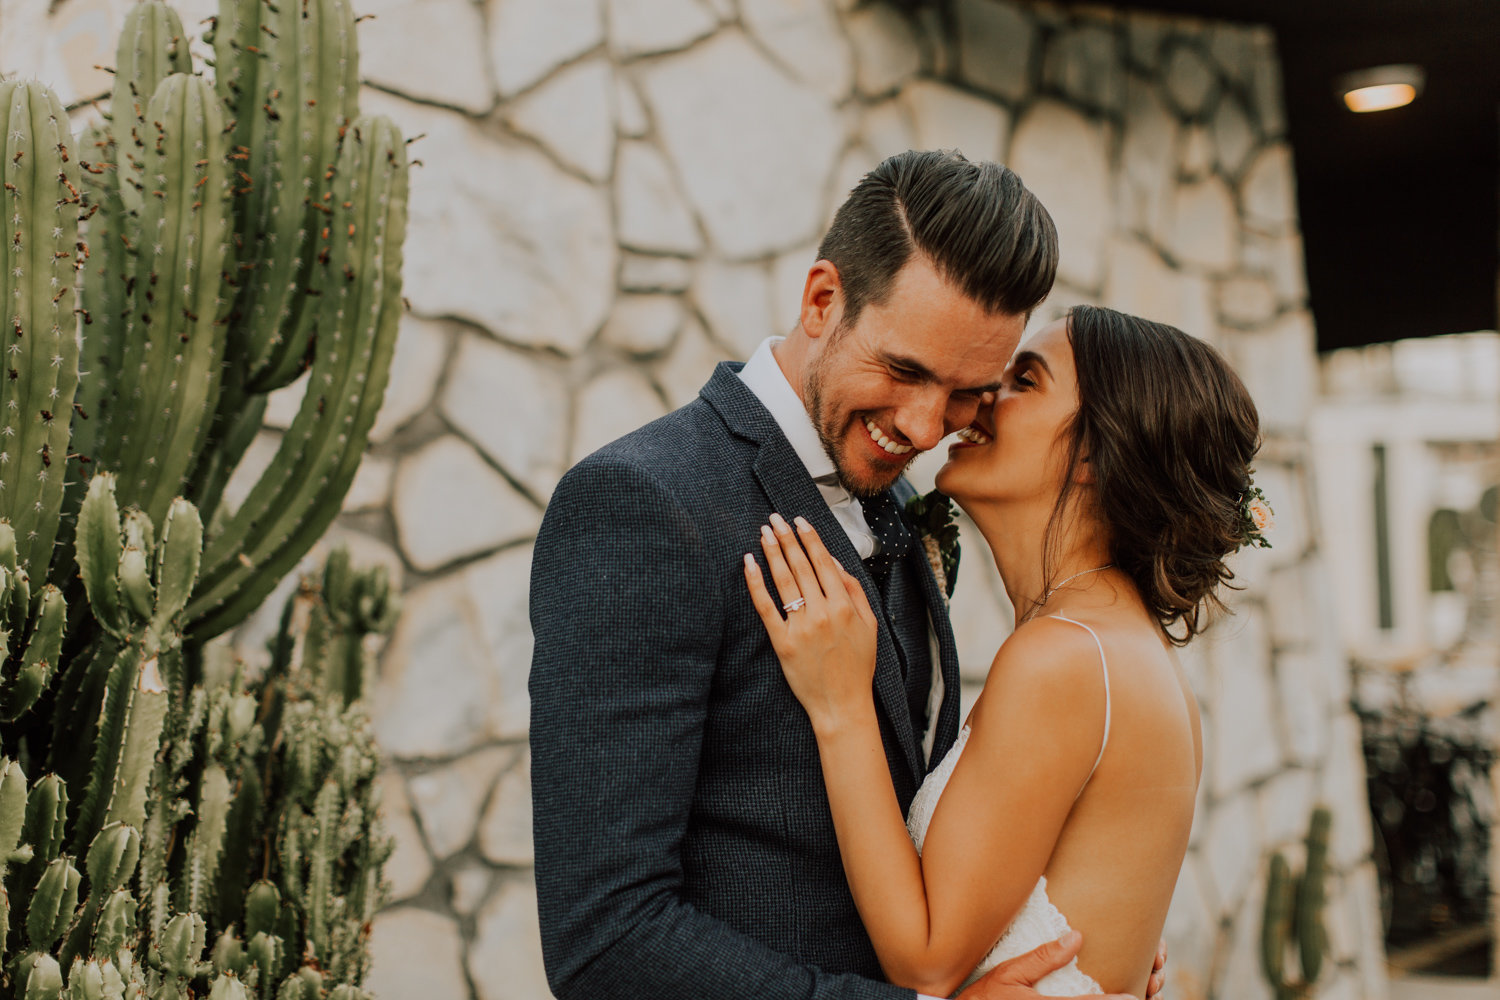 Brianna Broyles_Palm Springs Wedding Photographer_Ace Hotel Wedding_Ace Hotel Palm Springs-72